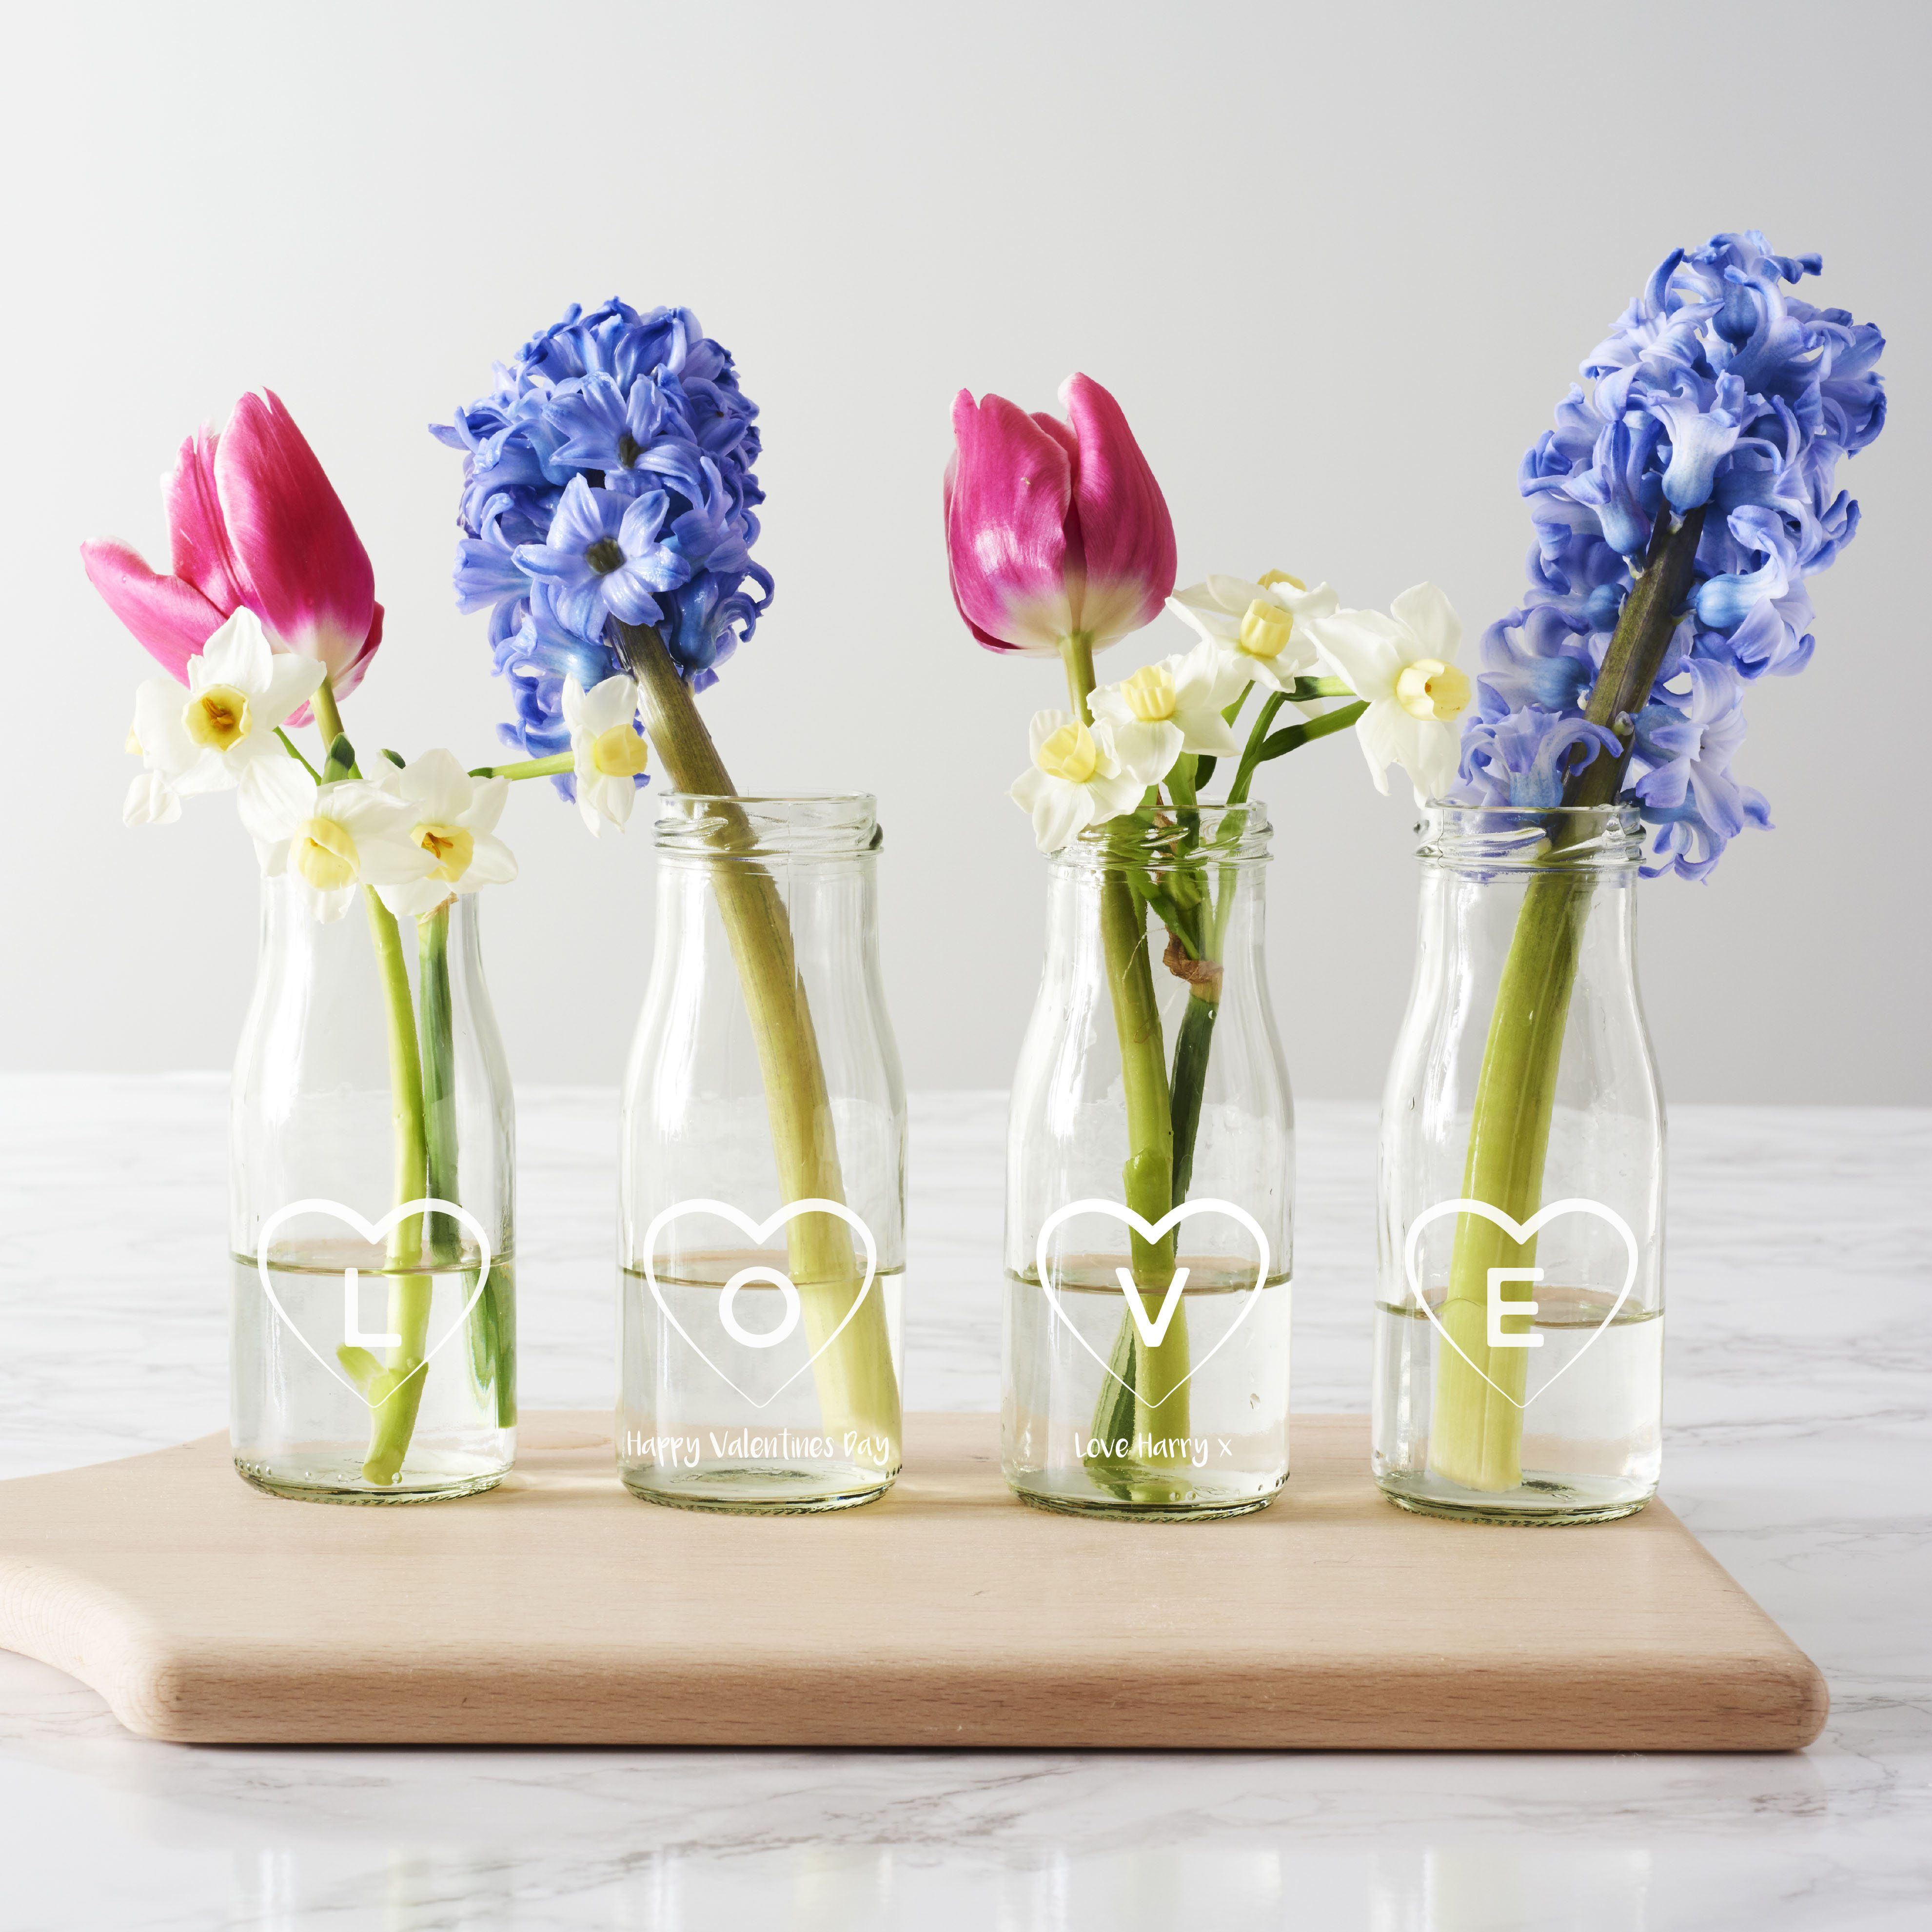 Personalised 'Love' Bottle Bud Vases